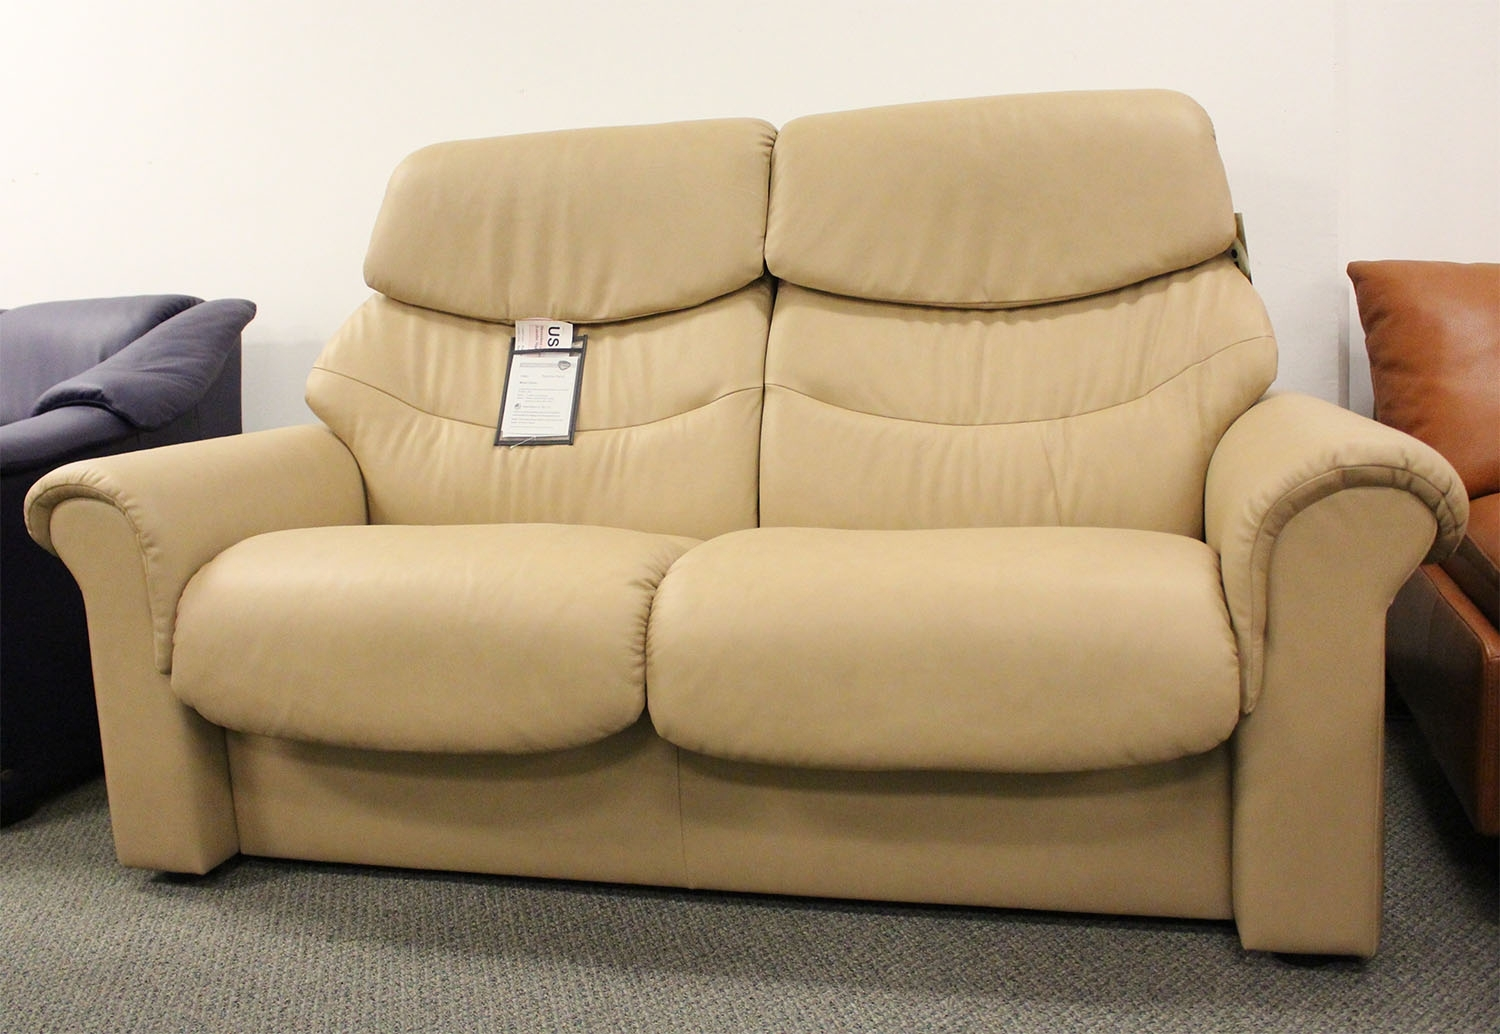 High Back Sectional Sofas – It Is Better To Opt For Leather Or Fabric? Throughout High Point Nc Sectional Sofas (Image 8 of 10)